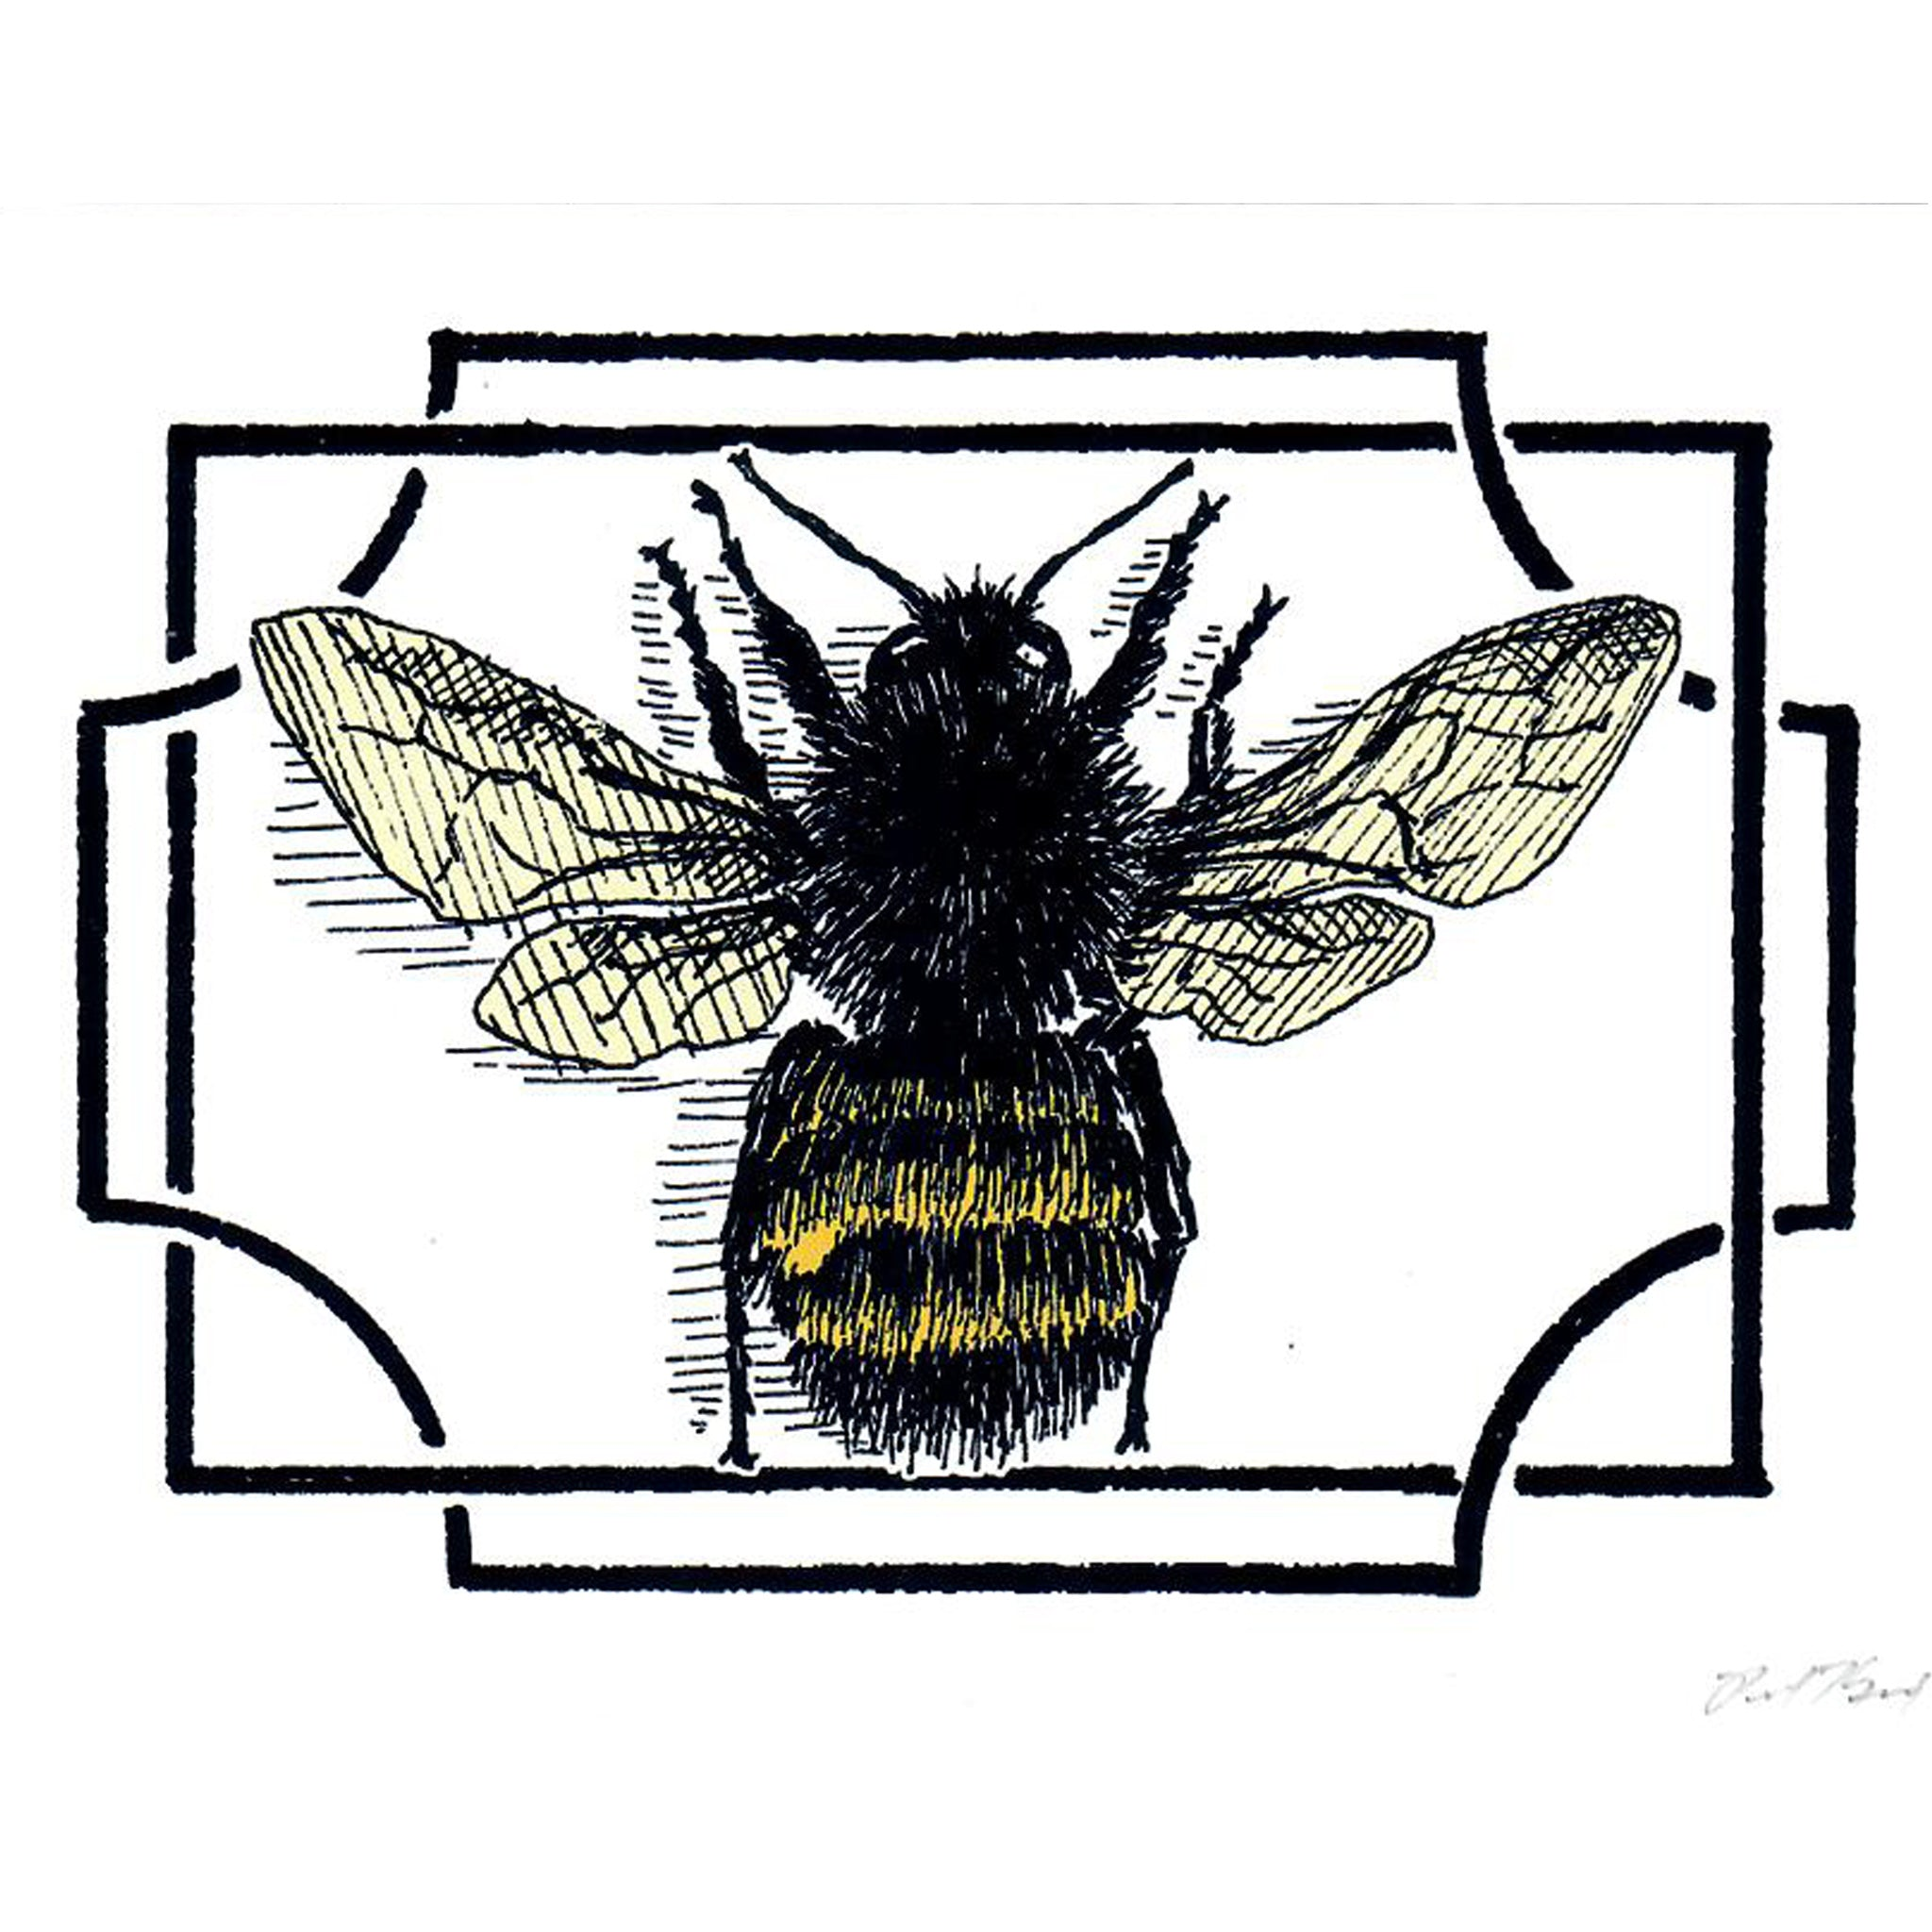 Bee Notecard, Pen and Ink Artwork by Paul Kmiotek